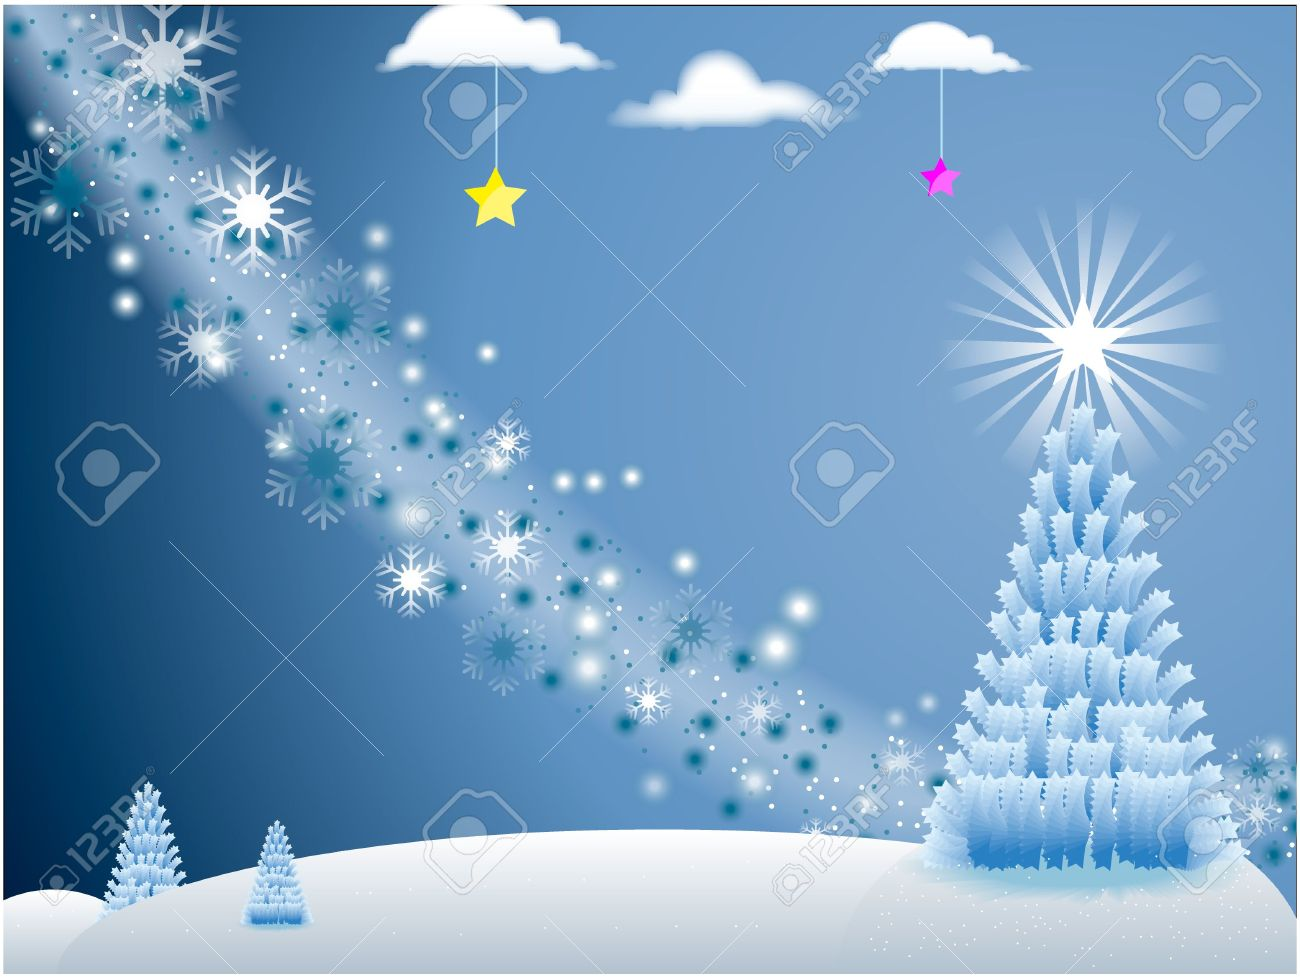 White Holiday Scene With Snowflakes And Christmas Tree With Stars ...